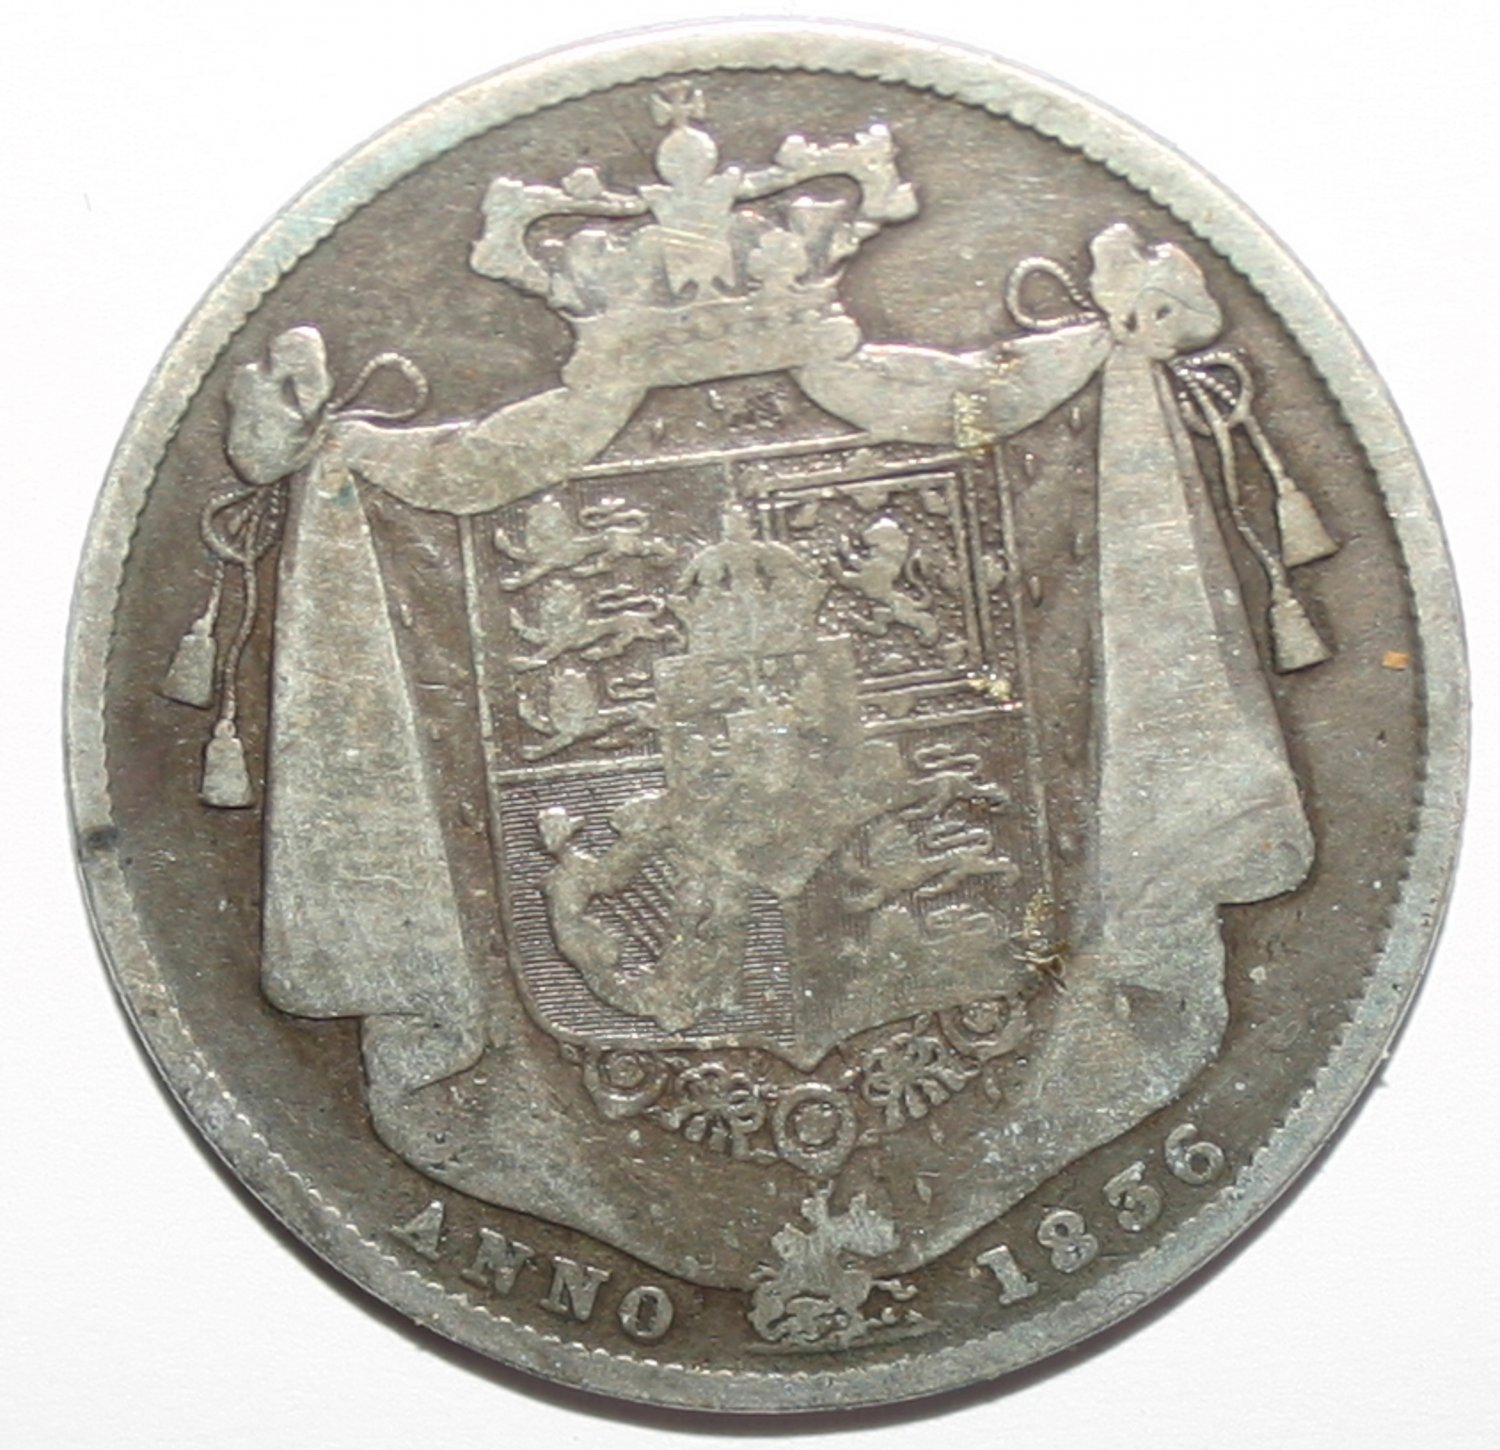 King William III 1836 Silver Half Crown Coin